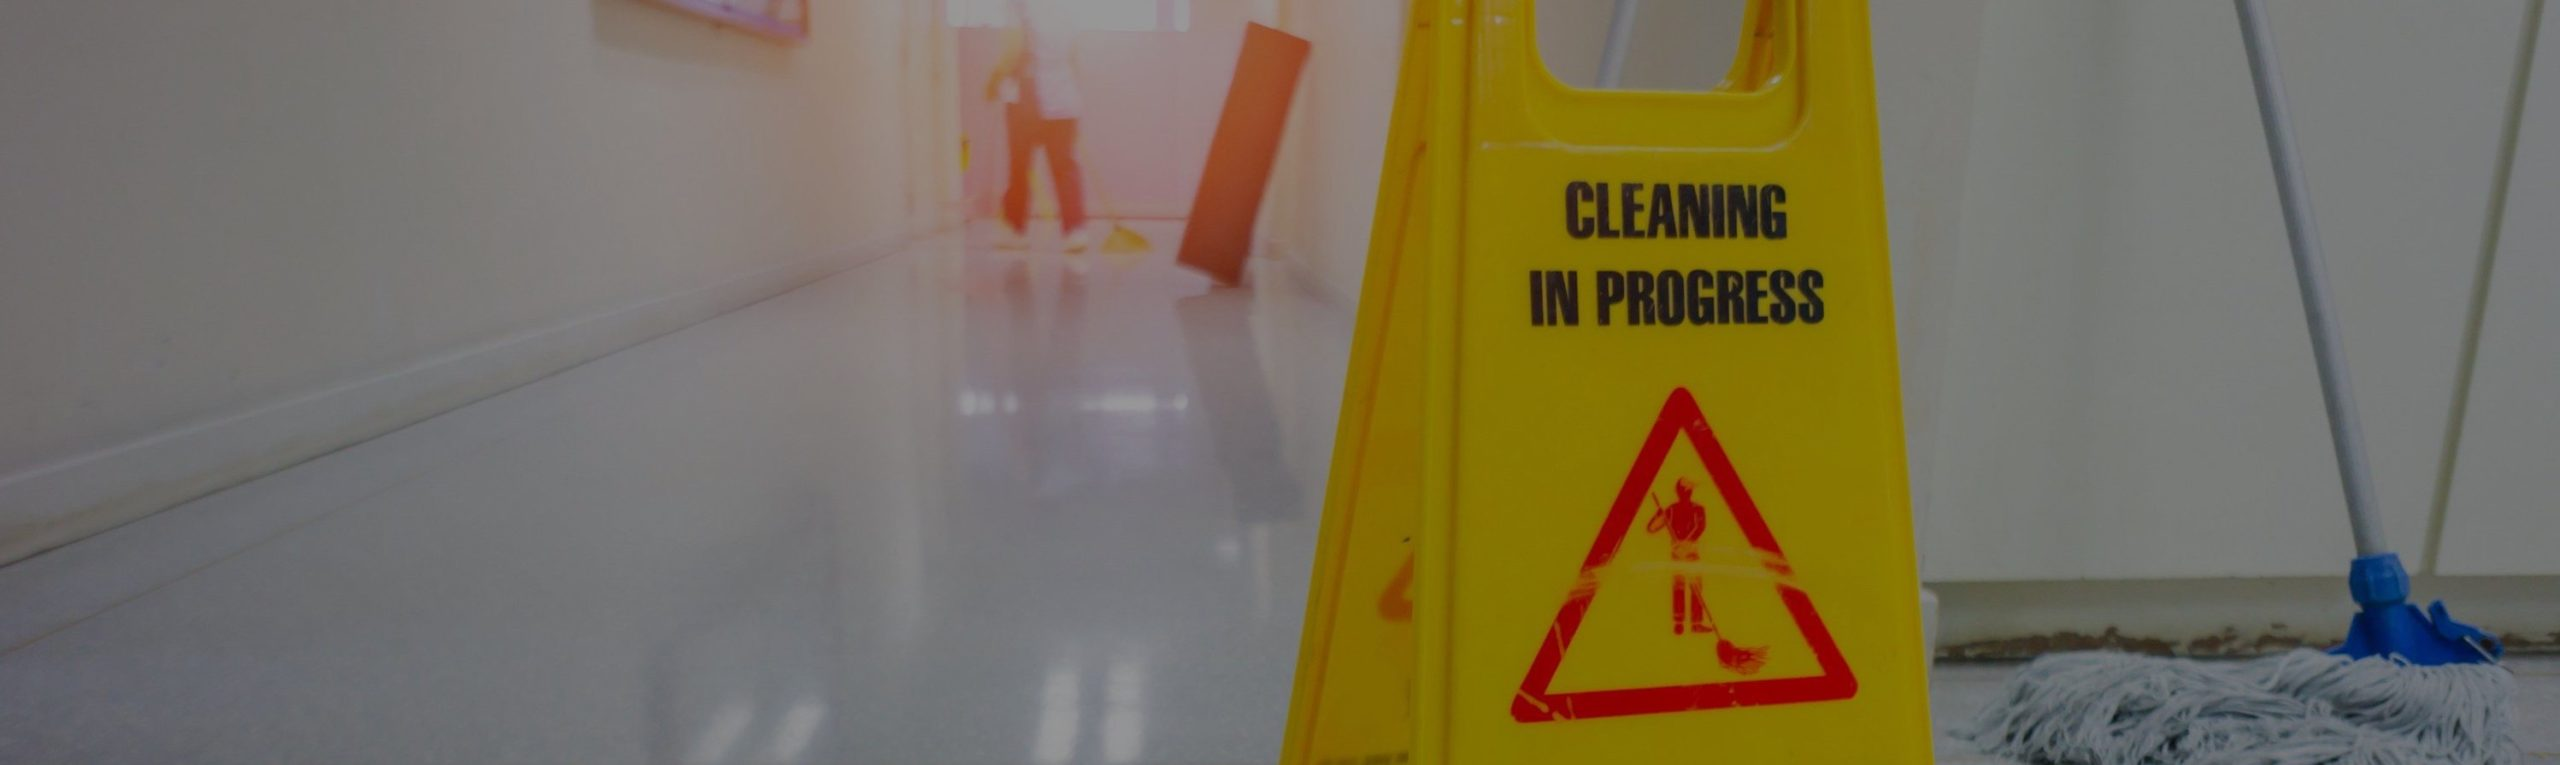 contact cleaning service scaled